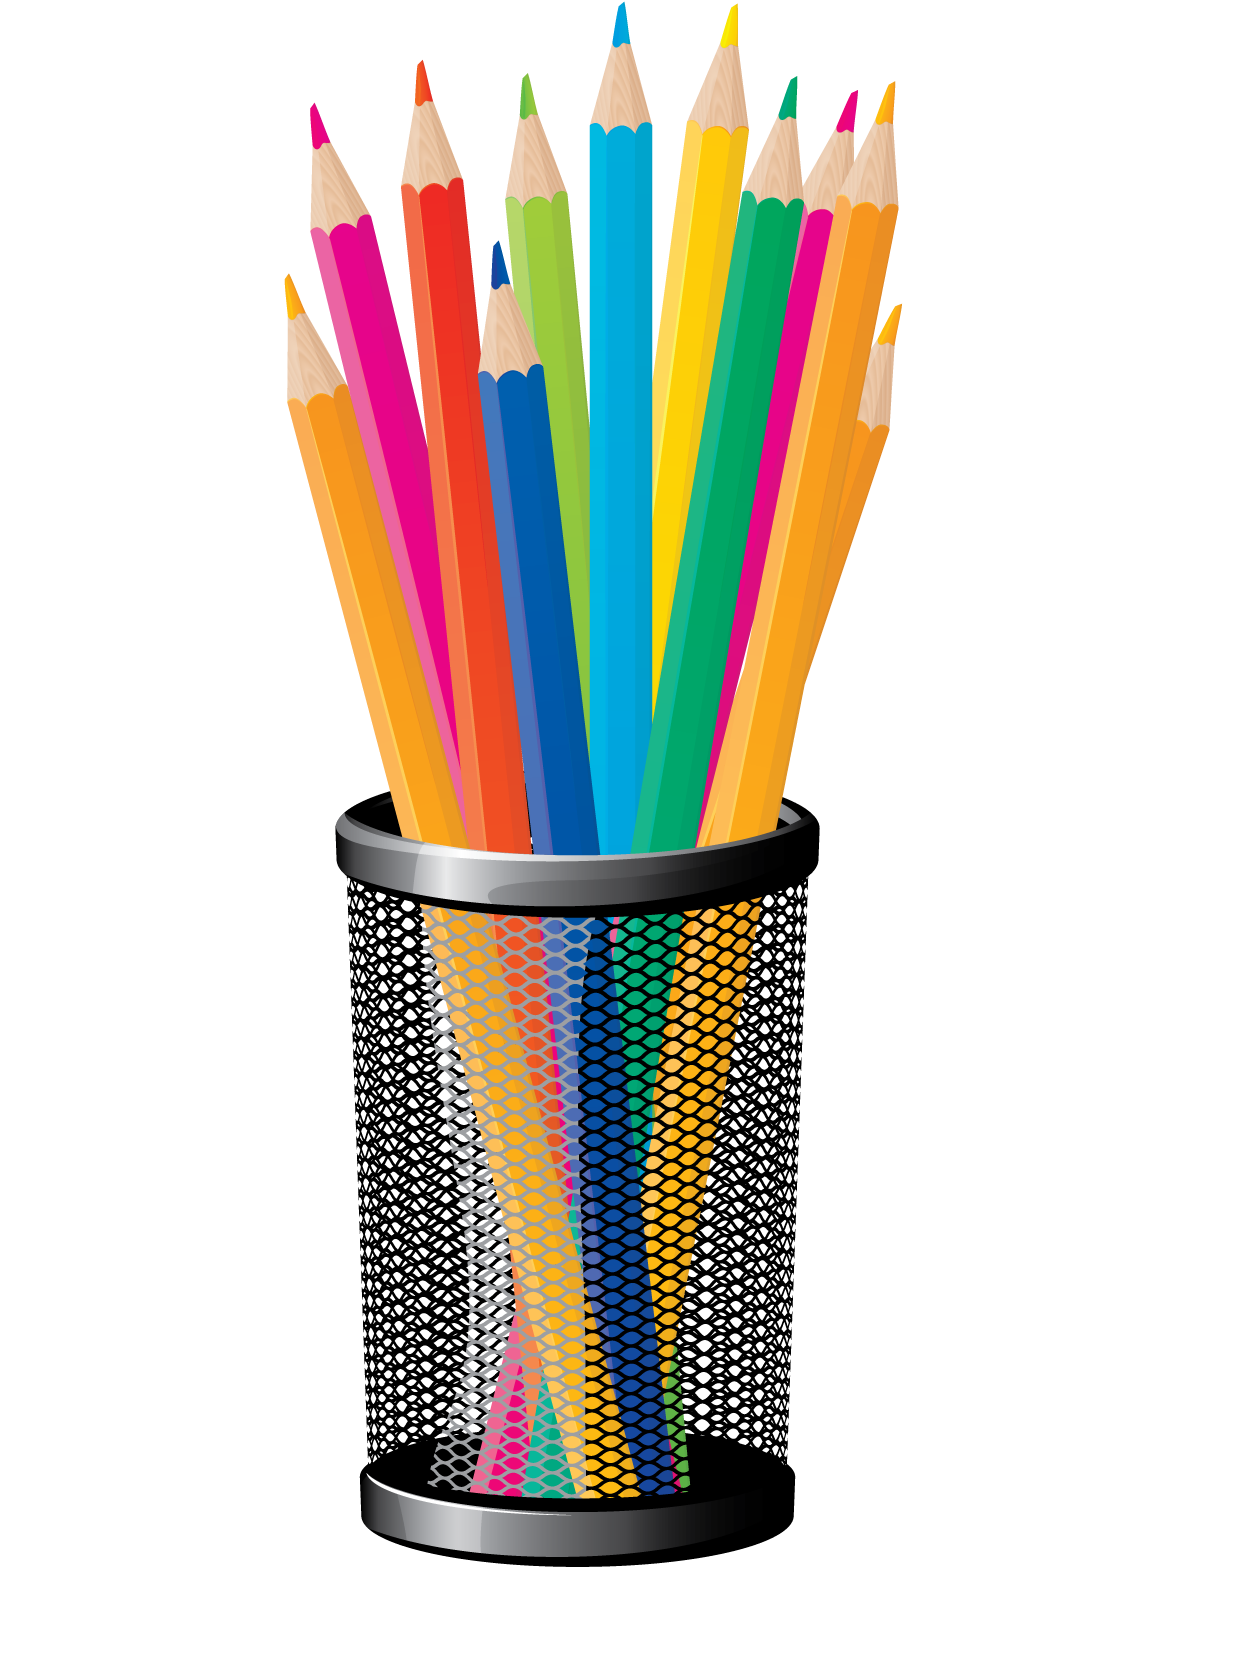 I can hear the. Crayons clipart pencil cup